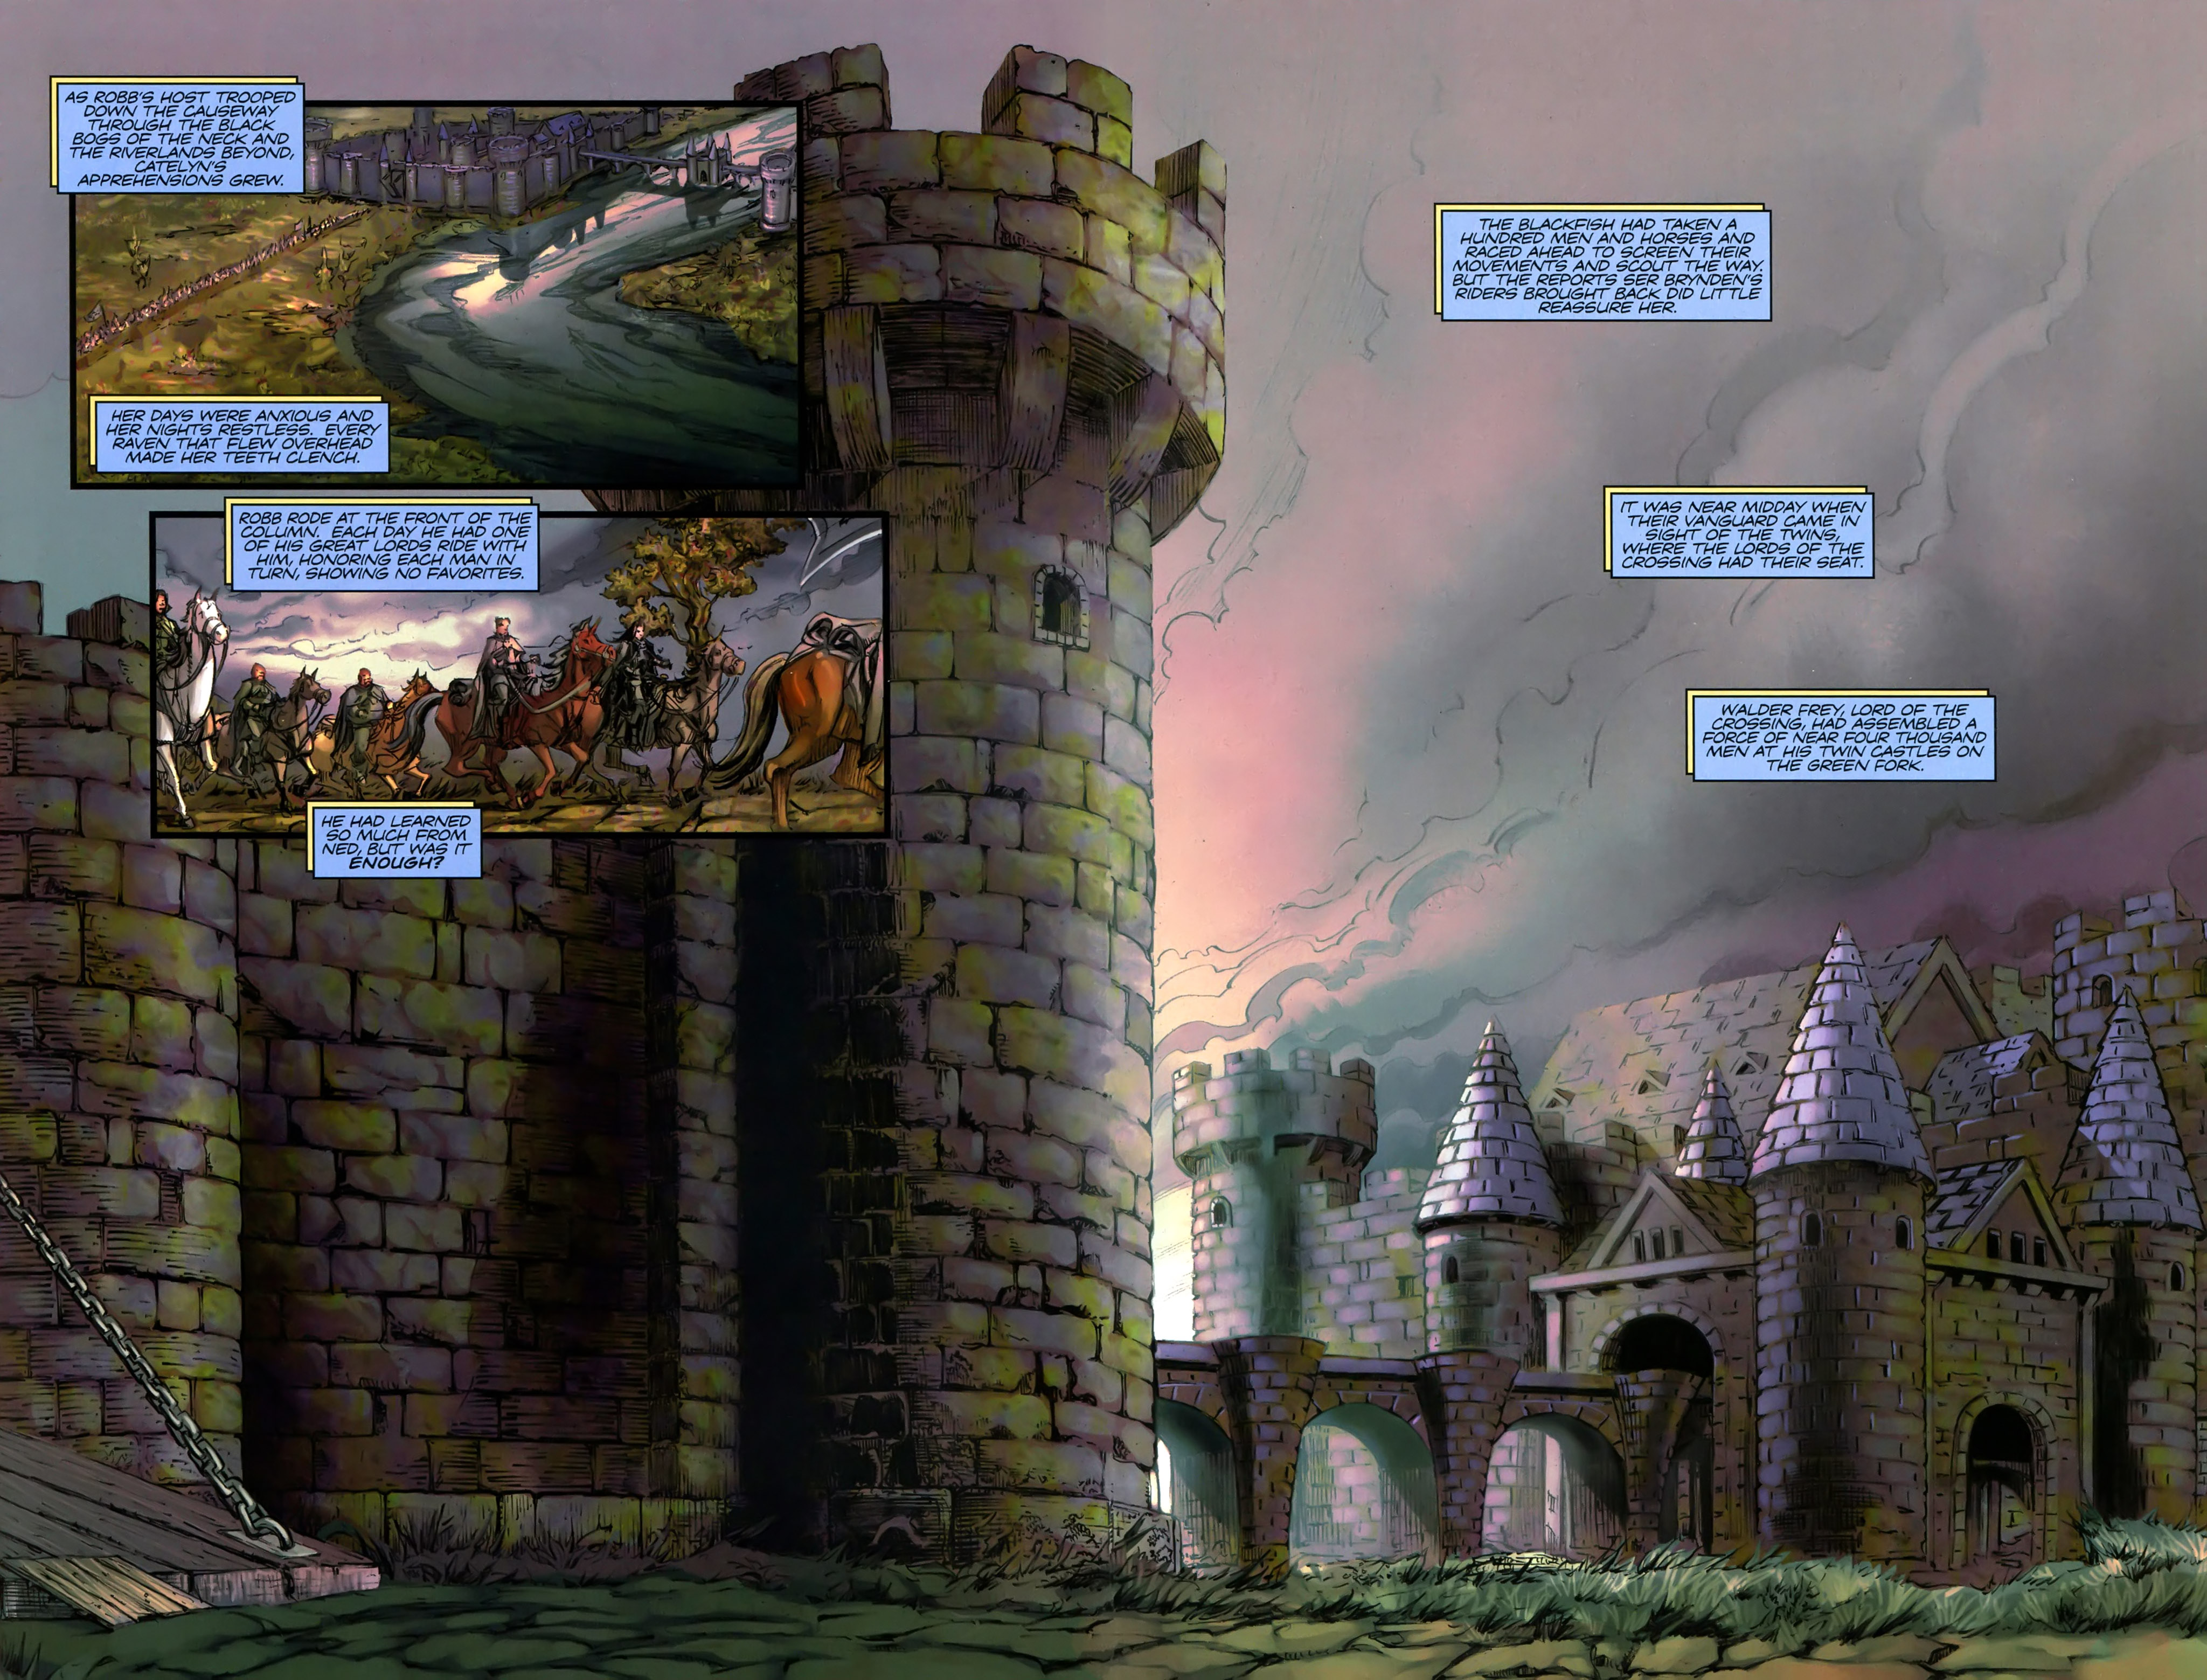 Read online A Game Of Thrones comic -  Issue #19 - 16